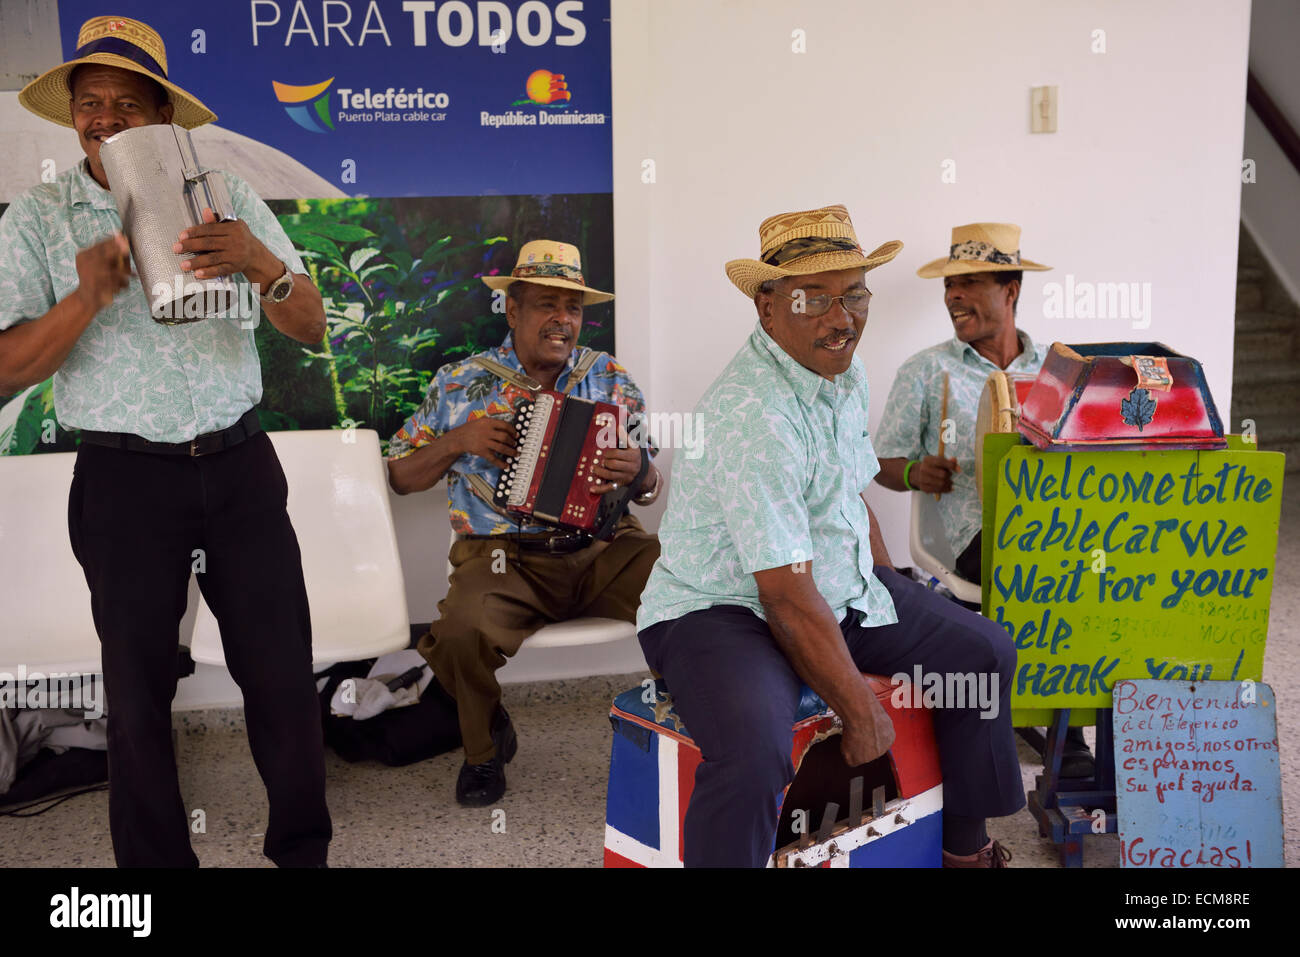 Merengue buskers playing at the Mount Isabel de Torres cable car station Puerto Plata Dominican Republic - Stock Image